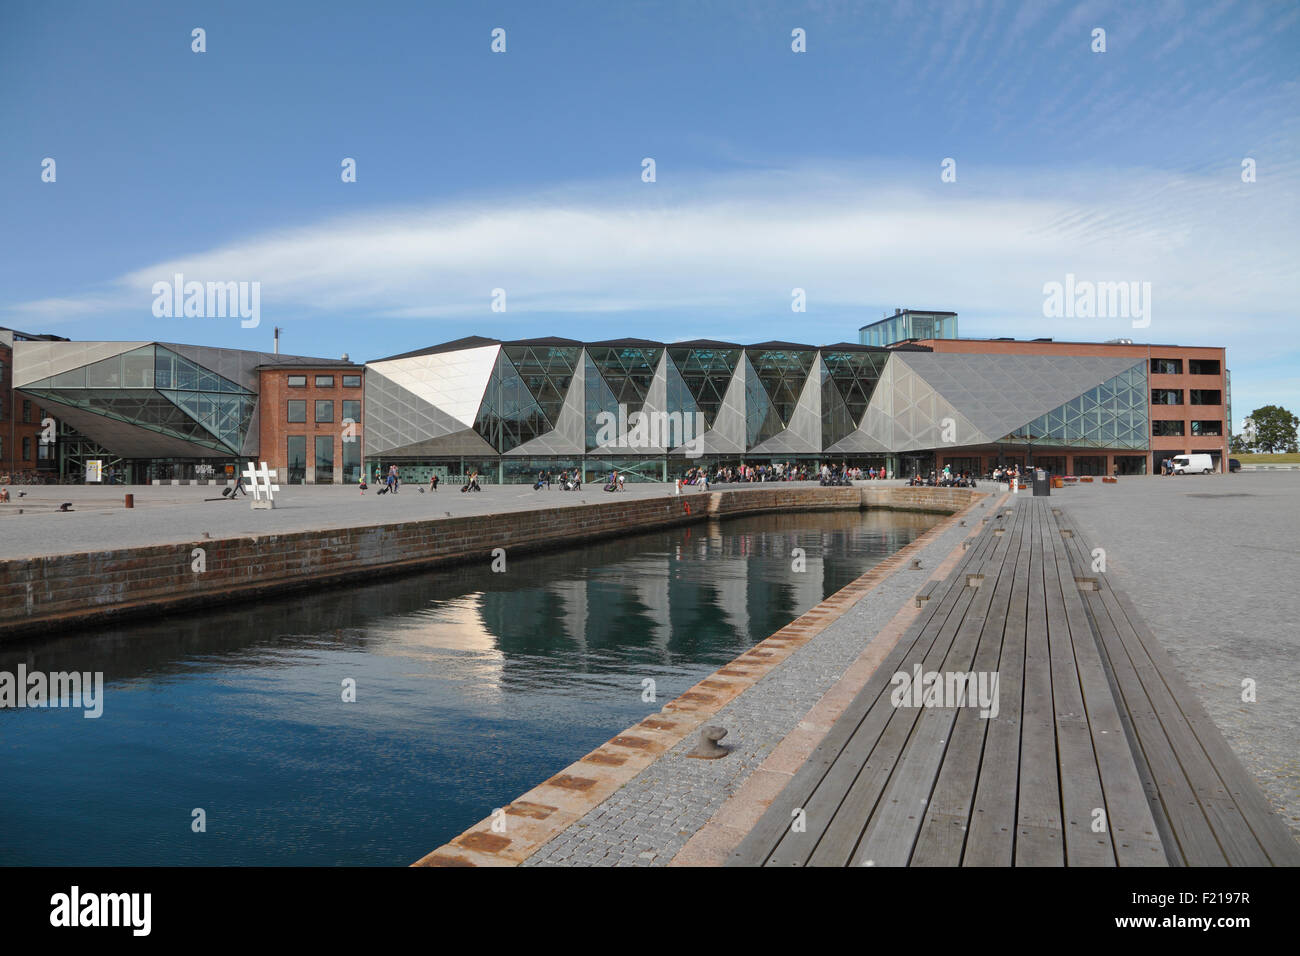 The Culture Yard in the area of the old shipyard on the waterfront in Elsinore  Harbour, Helsingør, Denmark. - Stock Image